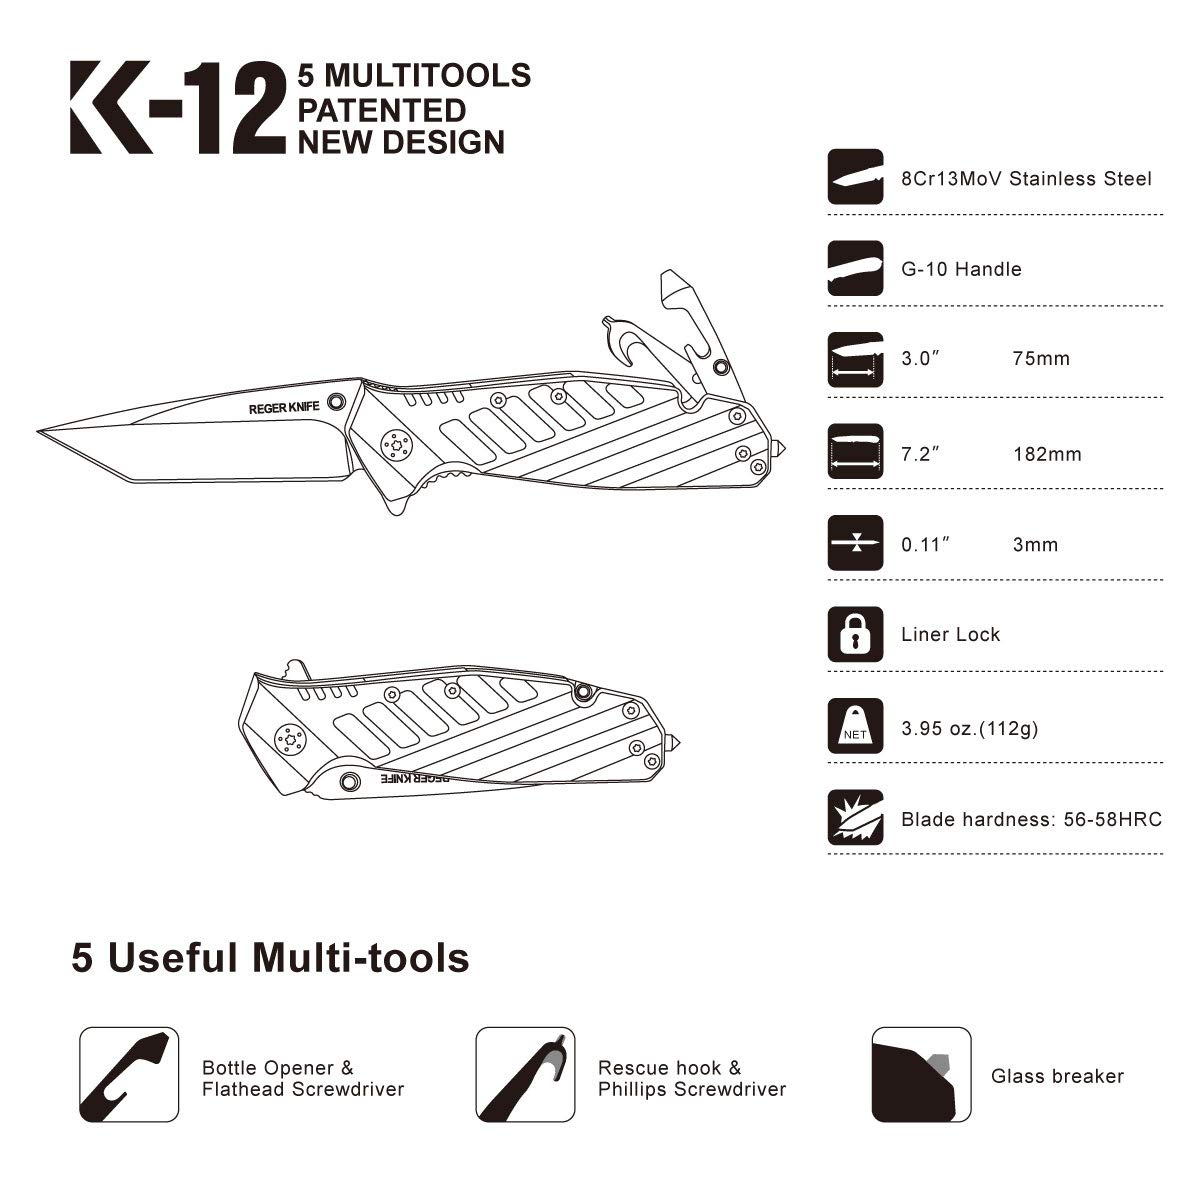 Pocket Folding Knife, RegerKnife 5 Multi-Function Spring Assisted Tactical Knife with 8Cr13MoV Steel Blade, High-Hardness G10 Handle, Pocket Clip, Waterproof Bag, Perfect for Camping, Hunting, EDC